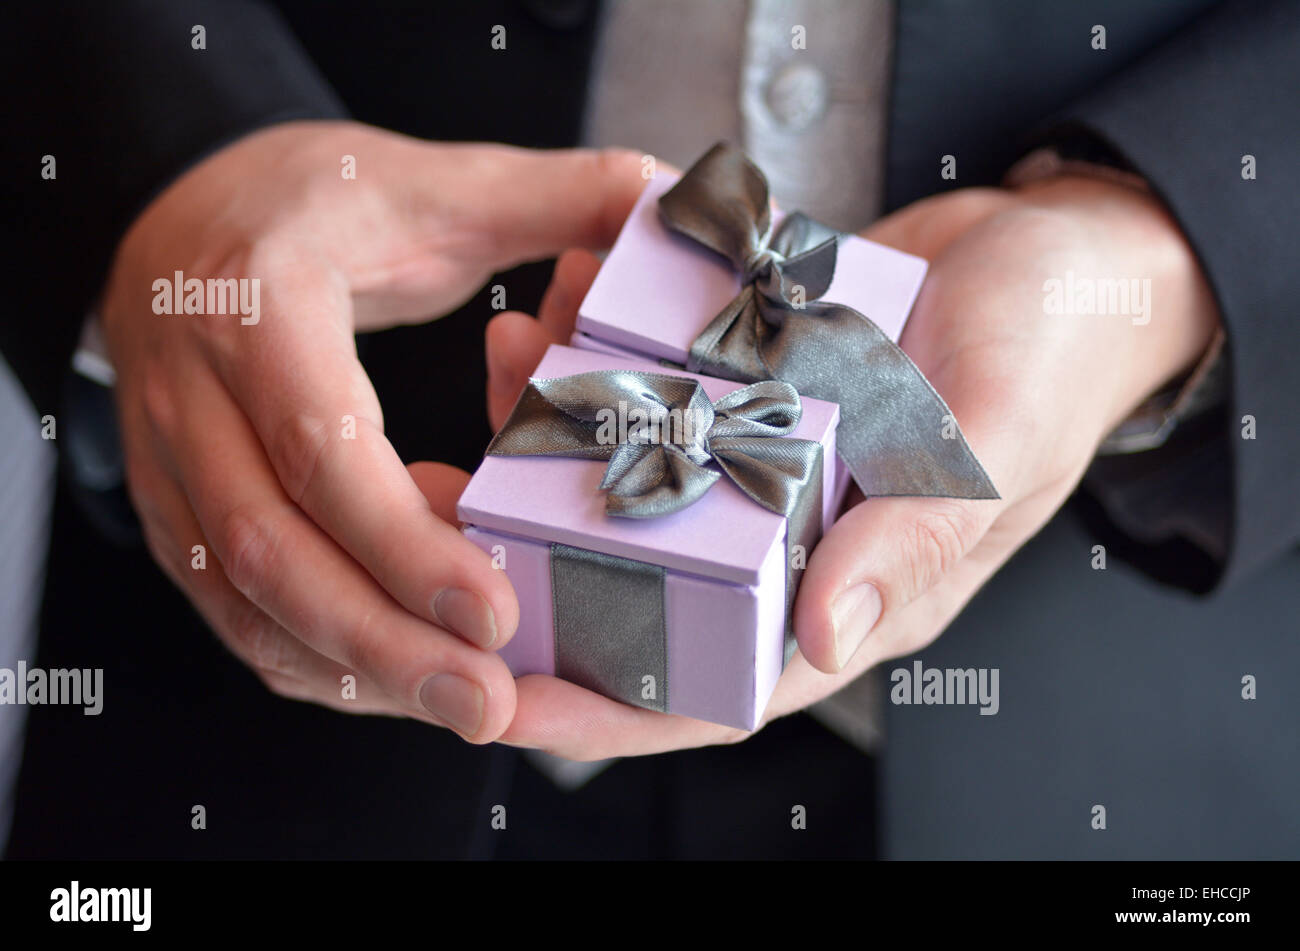 Man presents engagement rings. Concept of wedding, marriage, wealth and luxurious lifestyle - Stock Image